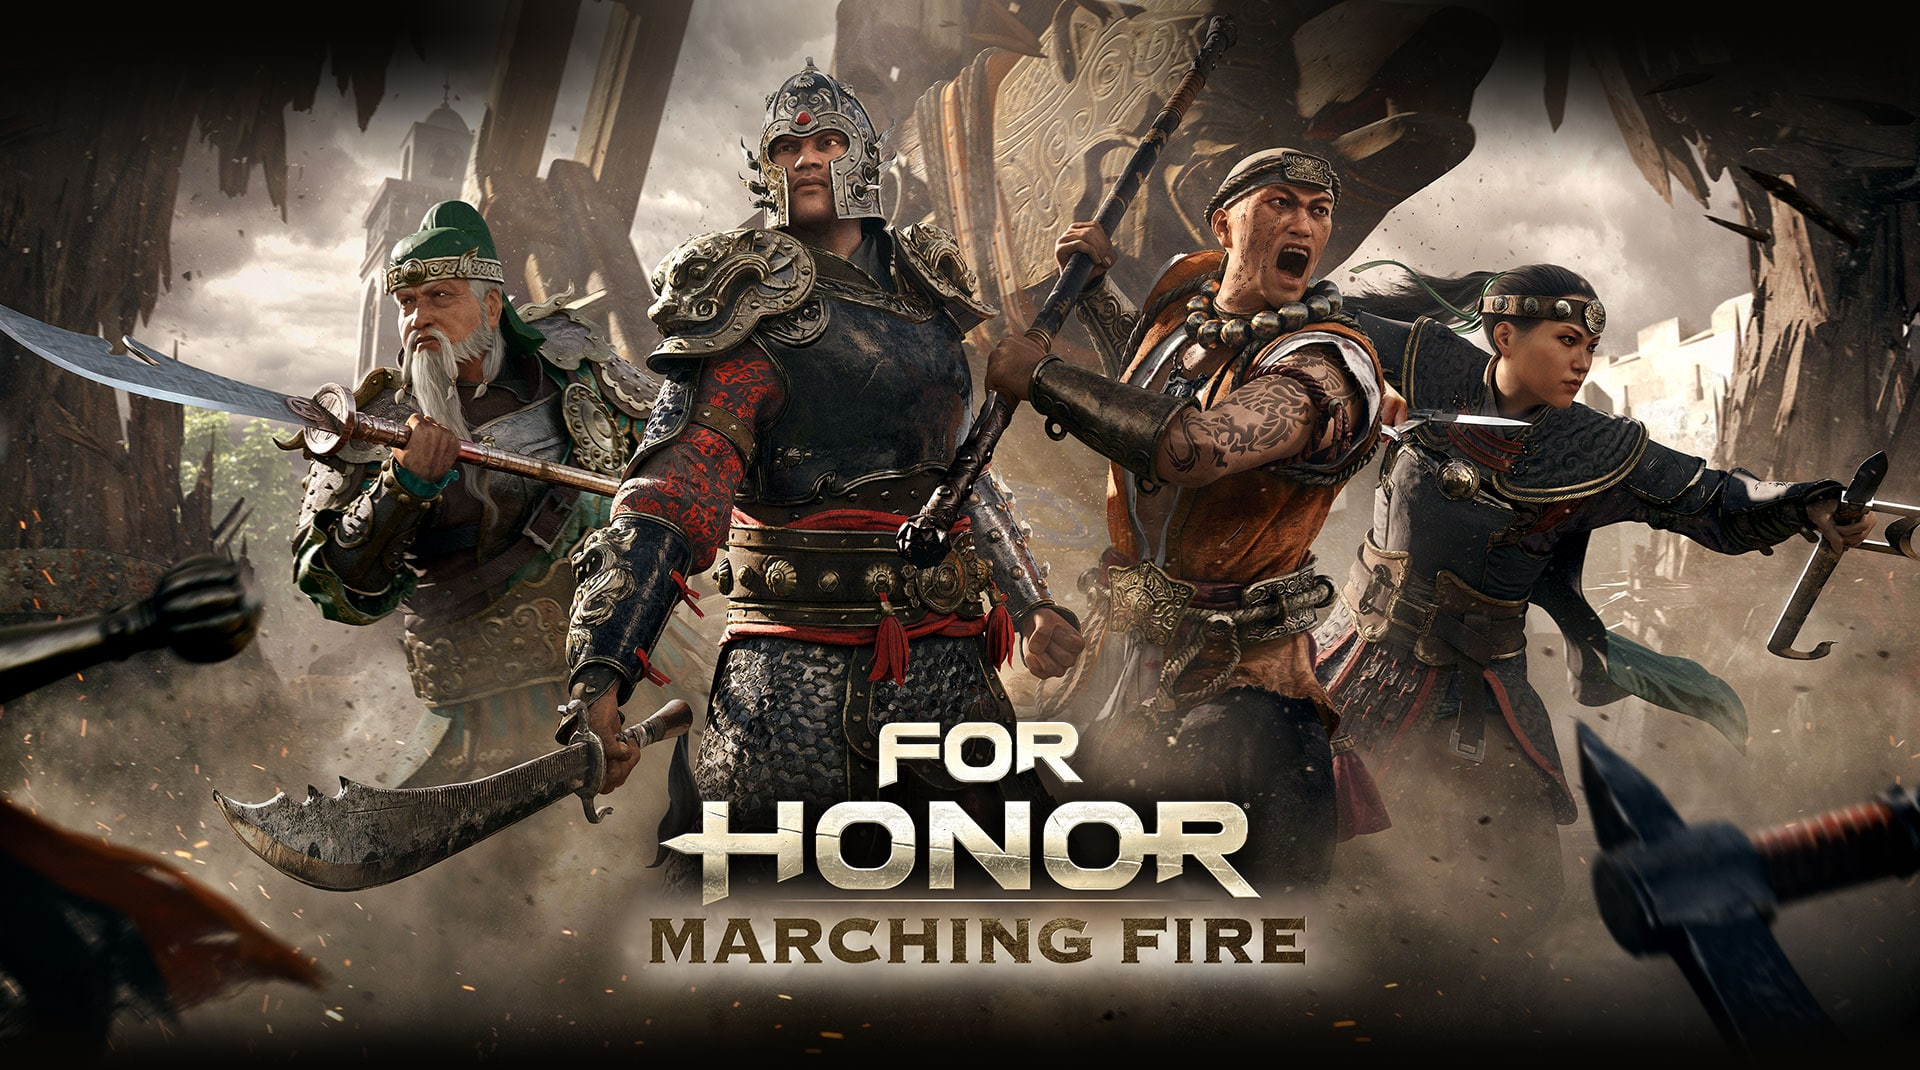 For-Honor-Marching-Fire-Open-Test-01-Header